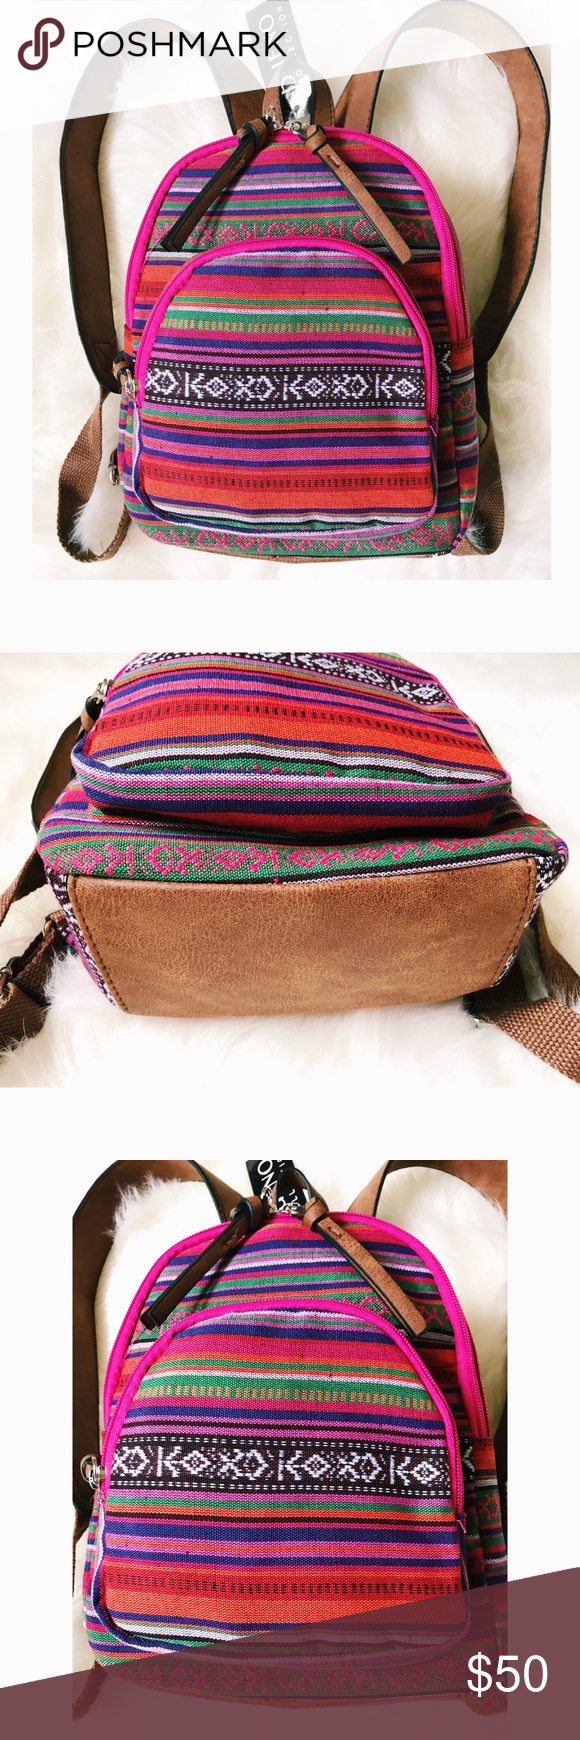 a7d8feb297  BUENO  Mini Backpack    BUENO COLLECTIONS    Aztec Print Mini Backpack in